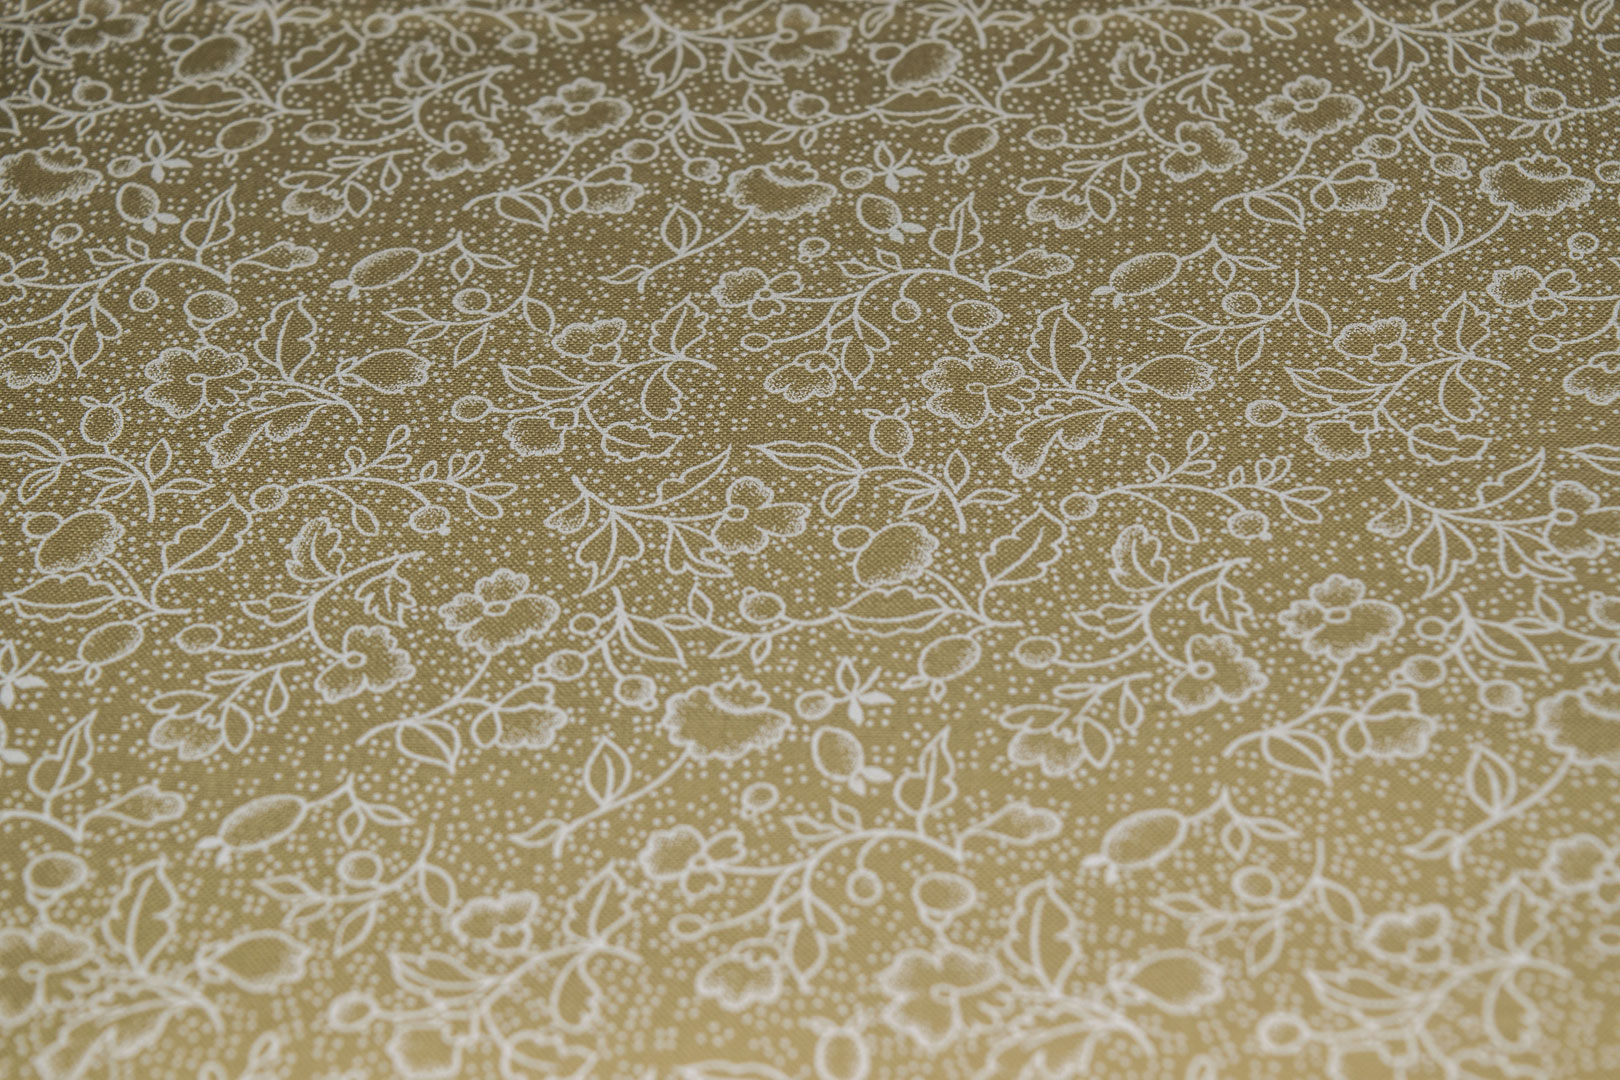 """8_21677_wteastain   44/45"""" 68/68, 100% Carded Cotton"""